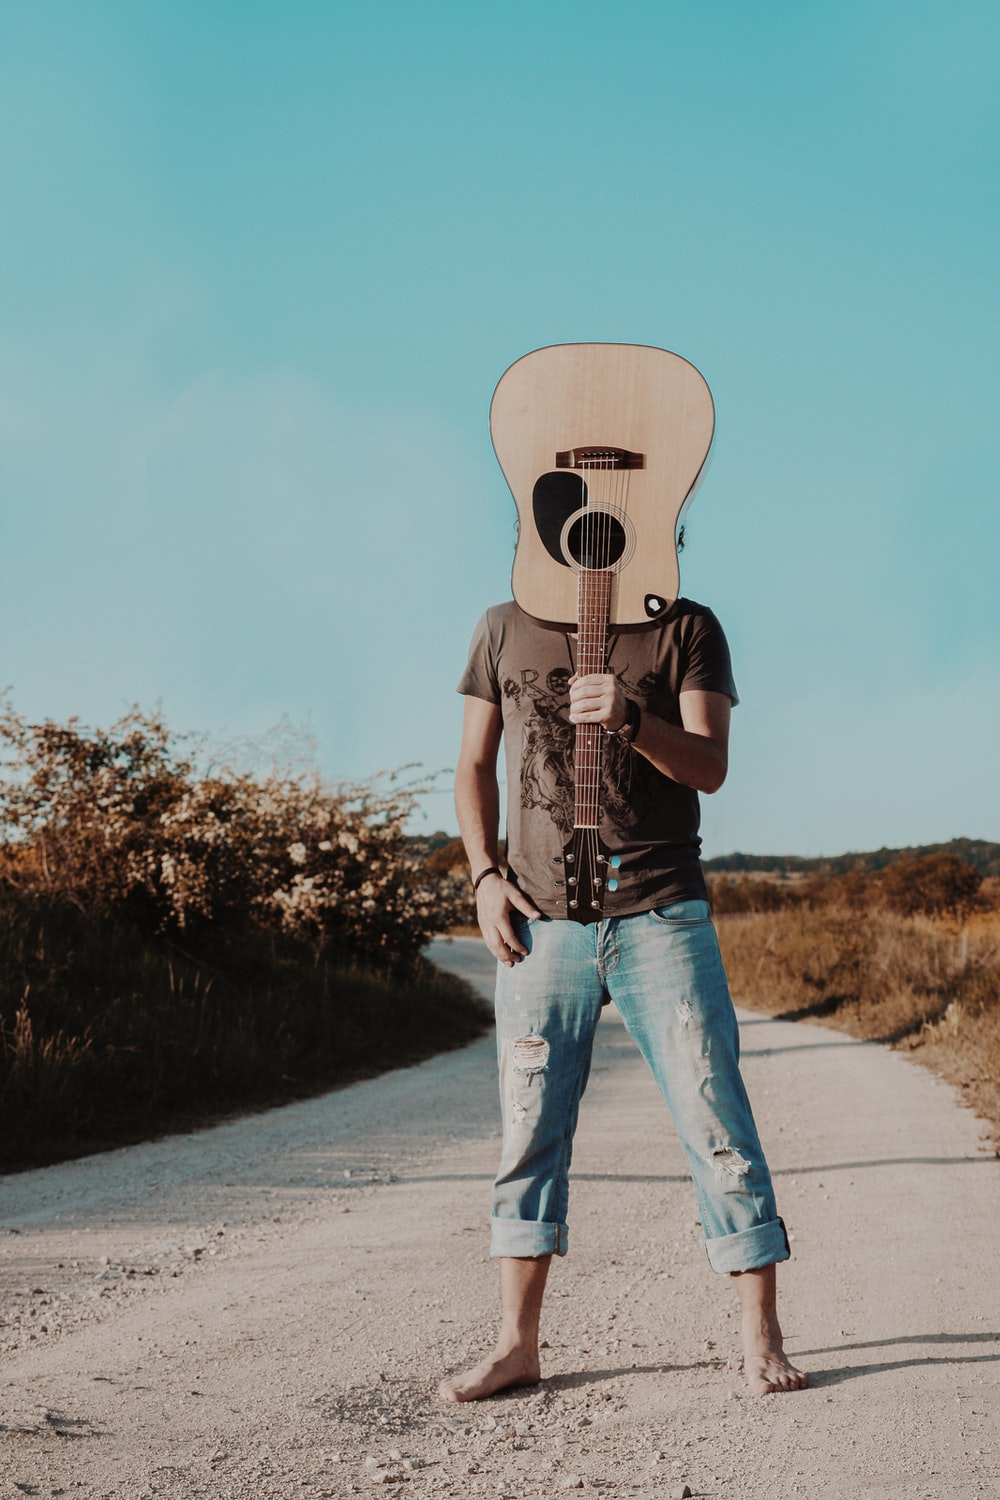 man holding brown acoustic guitar